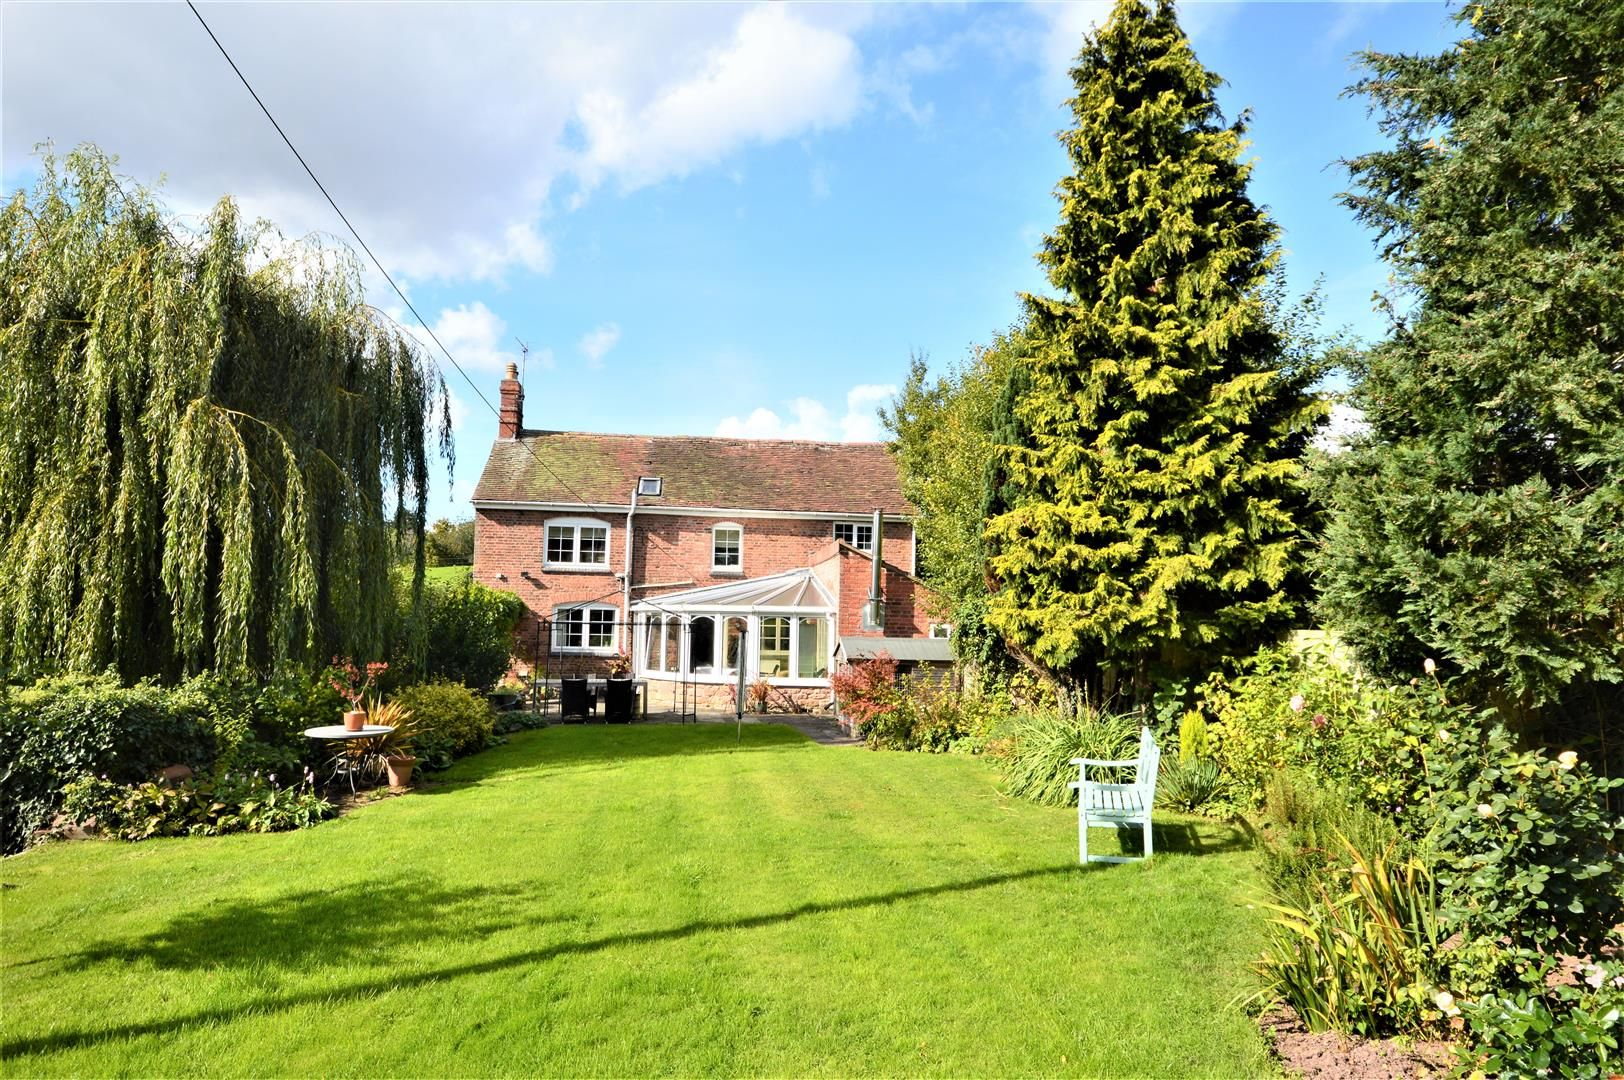 3 bed detached for sale in Burghill  - Property Image 1